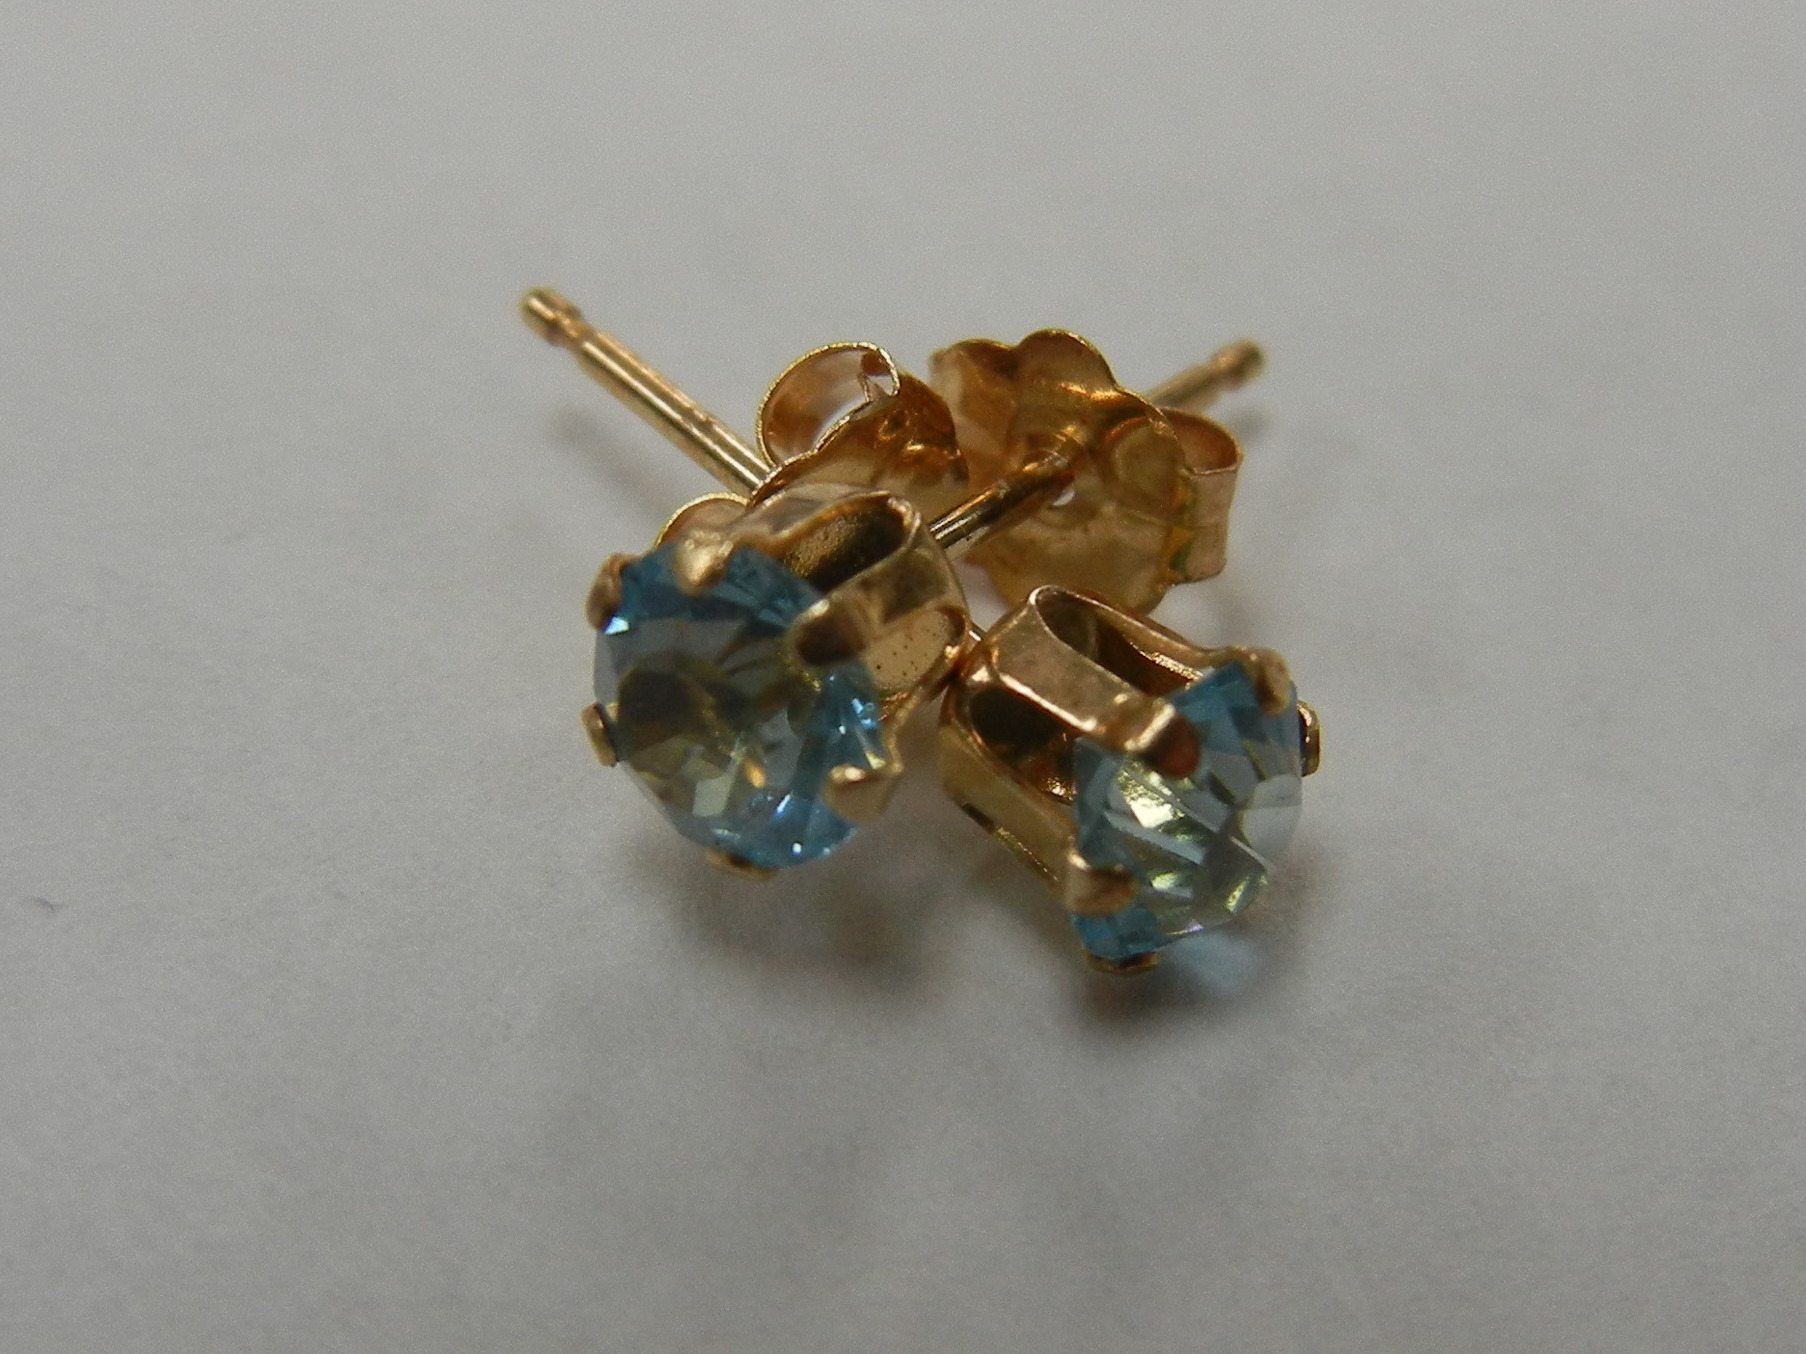 14 KT YELLOW GOLD STUD EARRINGS WITH BLUE STONE